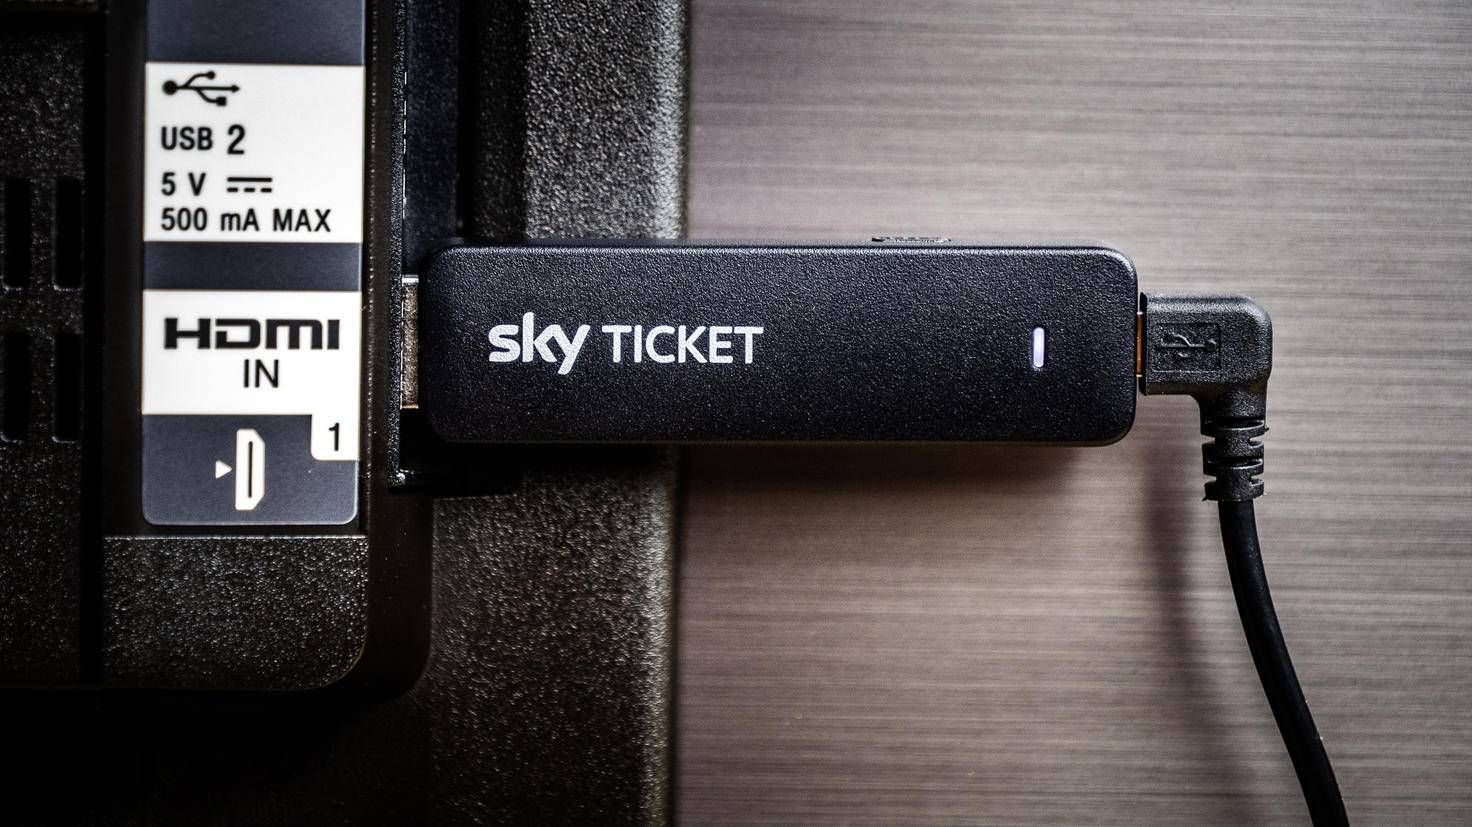 Sky-Ticket-Stick-08